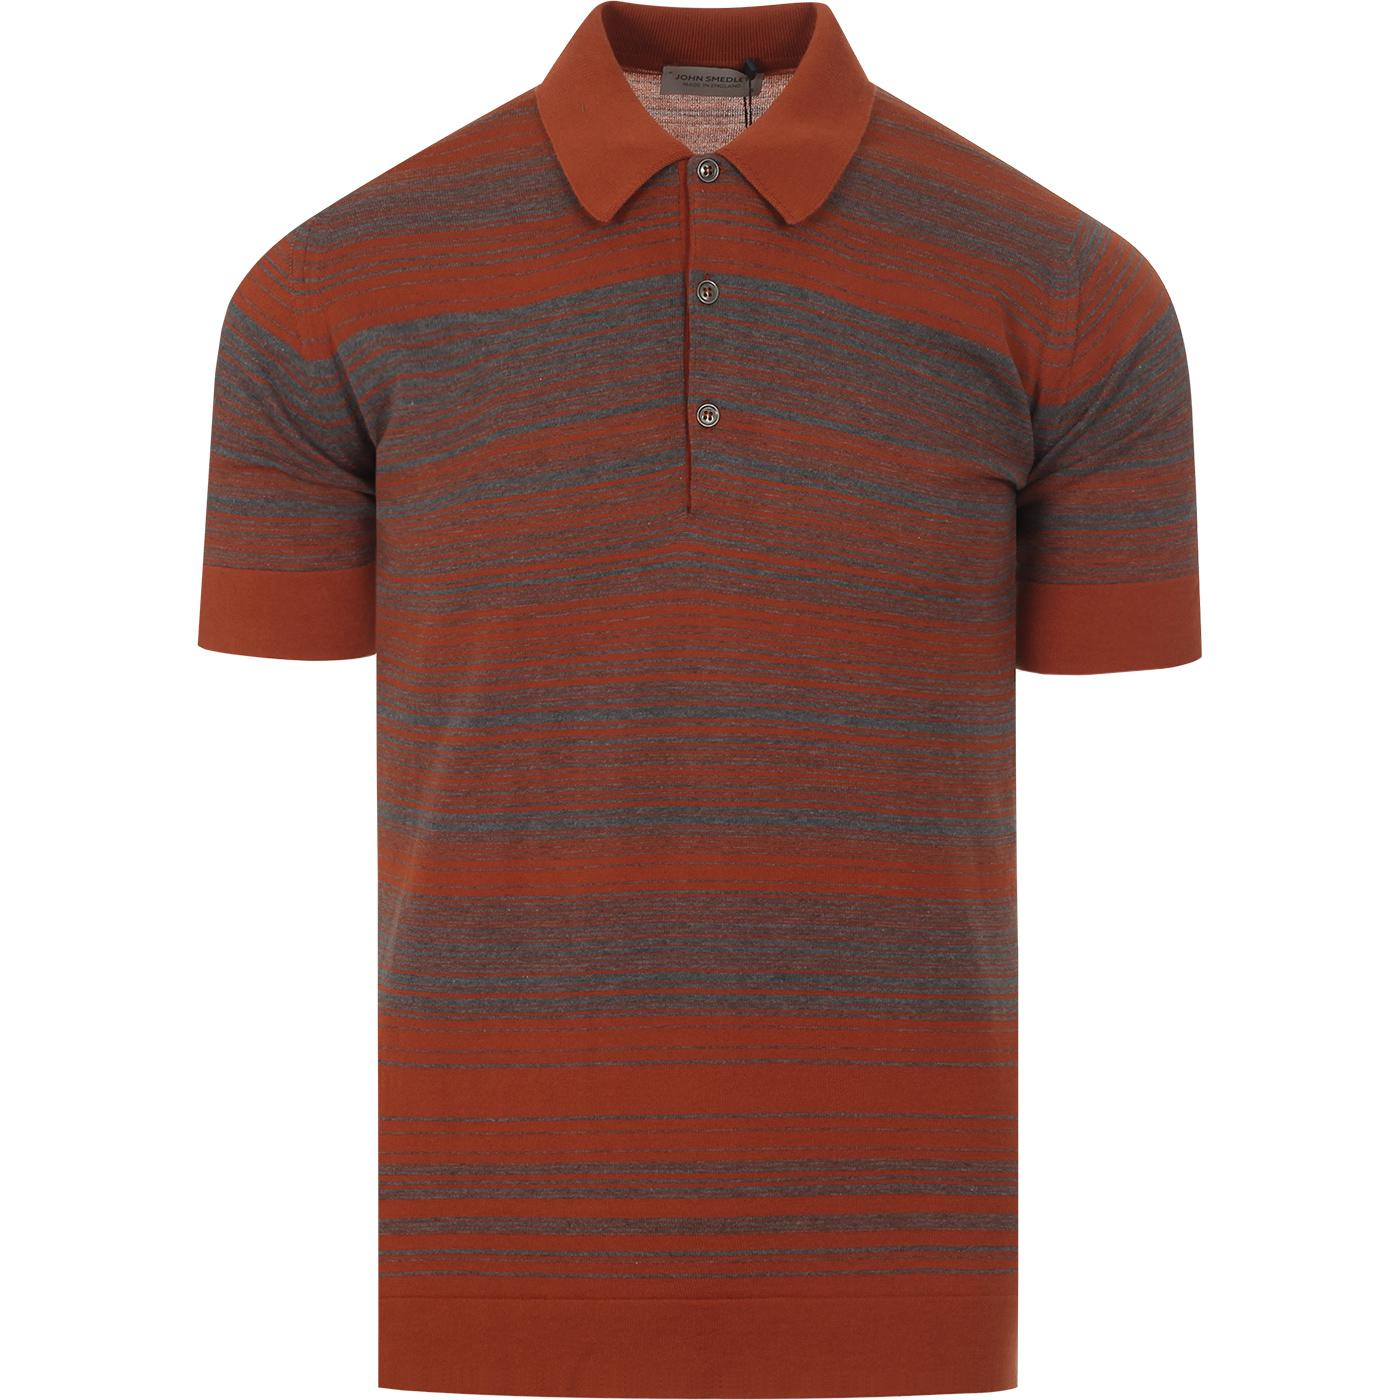 Timber JOHN SMEDLEY Made in England Stripe Polo